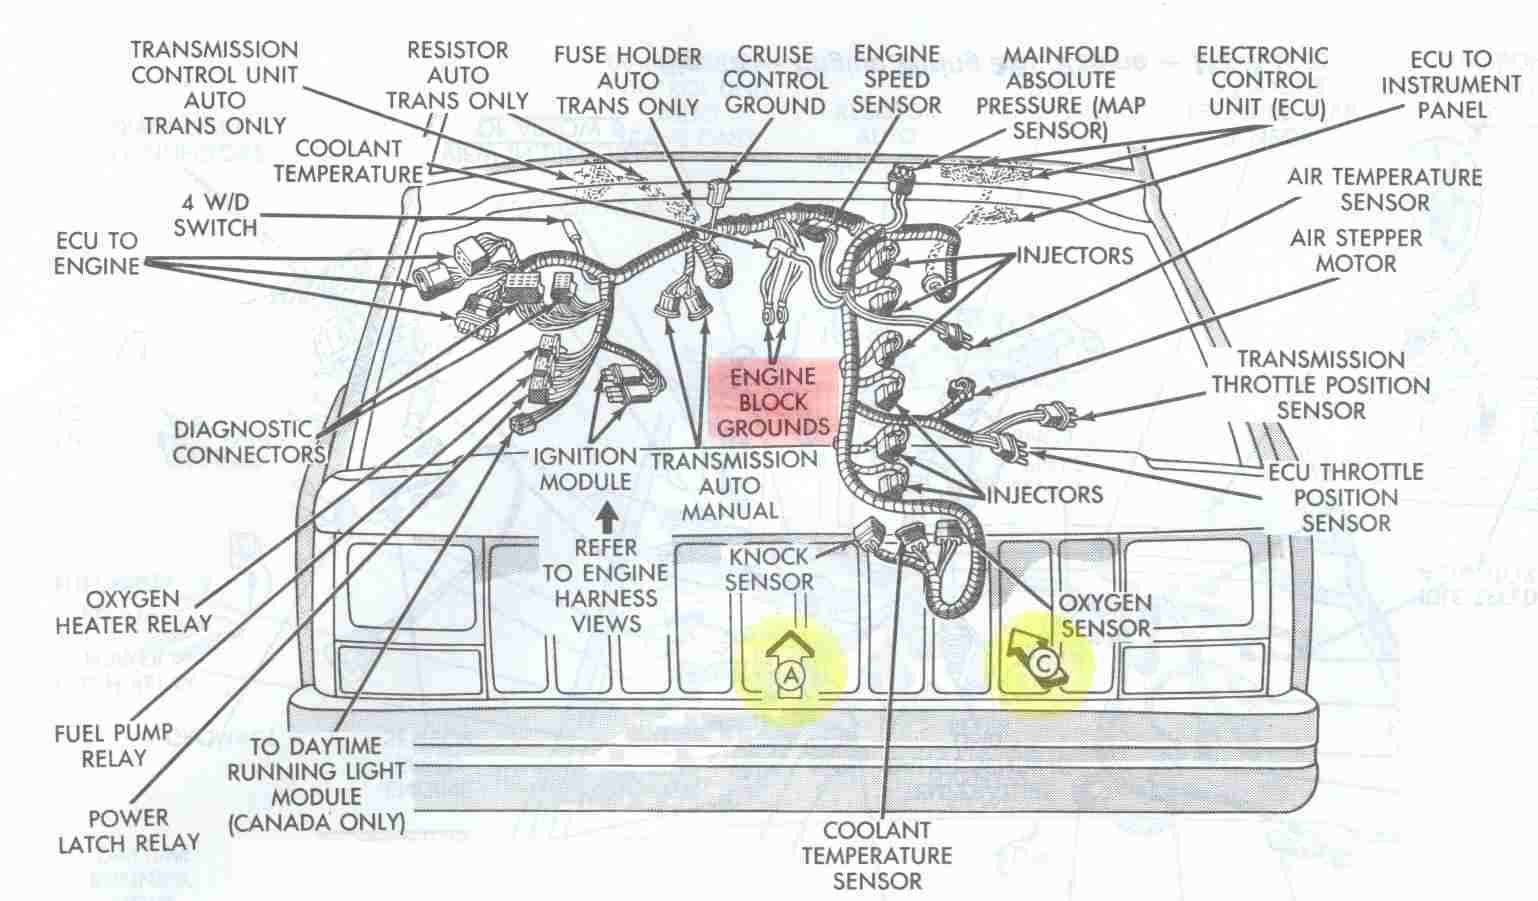 ab0134a7d9e021431187af597eb4aeca engine bay schematic showing major electrical ground points for 89 jeep cherokee wiring diagram at reclaimingppi.co